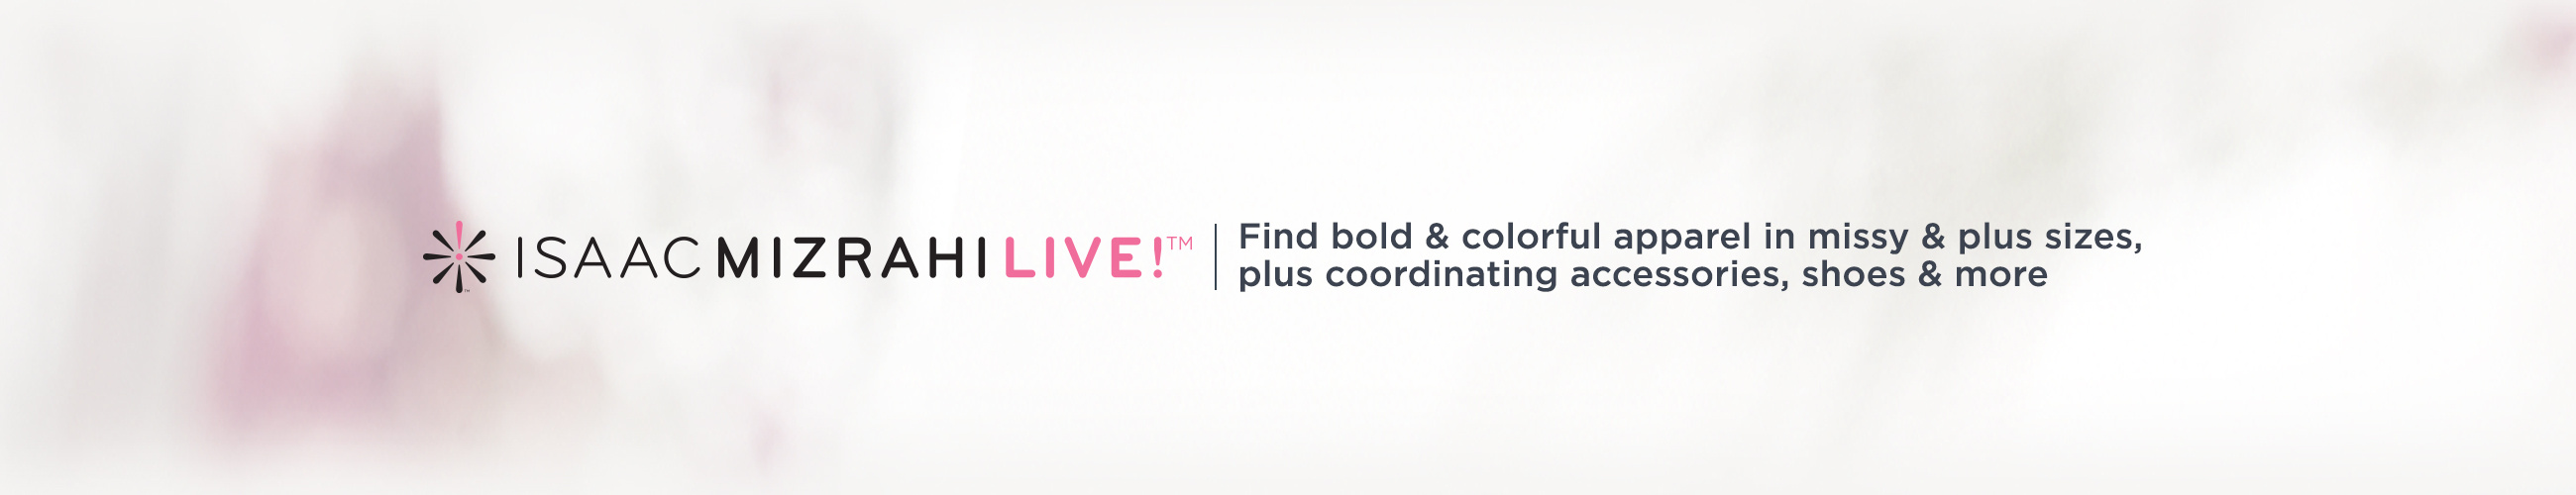 Isaac Mizrahi Live - Find bold & colorful apparel in missy & plus sizes, plus coordinating accessories, shoes & more